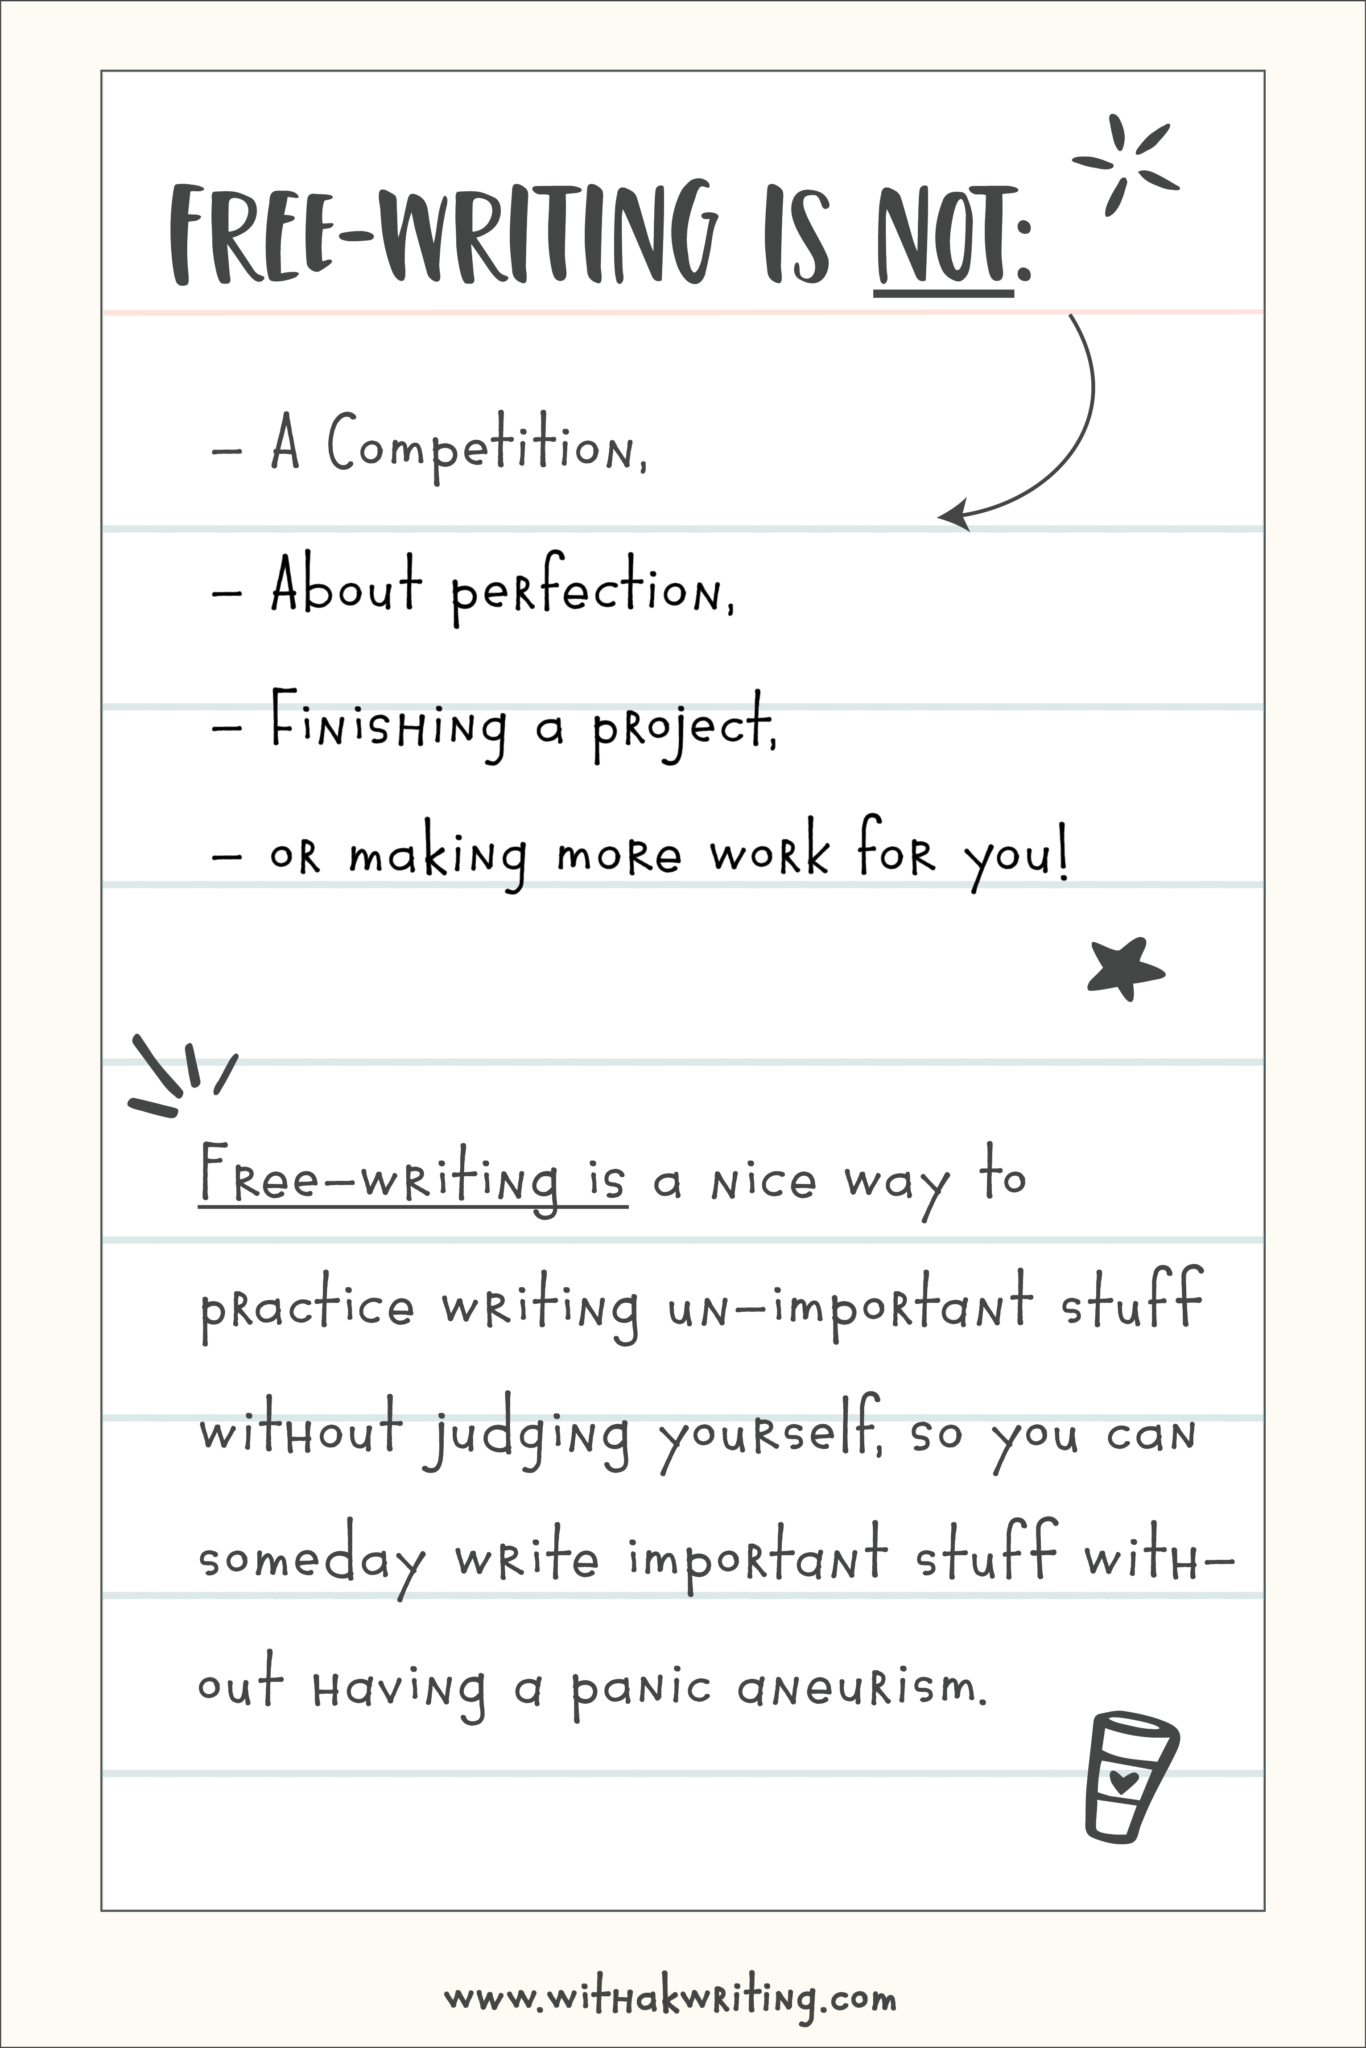 Free-writing is an effective way to practice writing un-important stuff without judging yourself, so you can write important stuff without having an aneurism from stress.   Join the #30DaysWithaK challenge for free to start today.